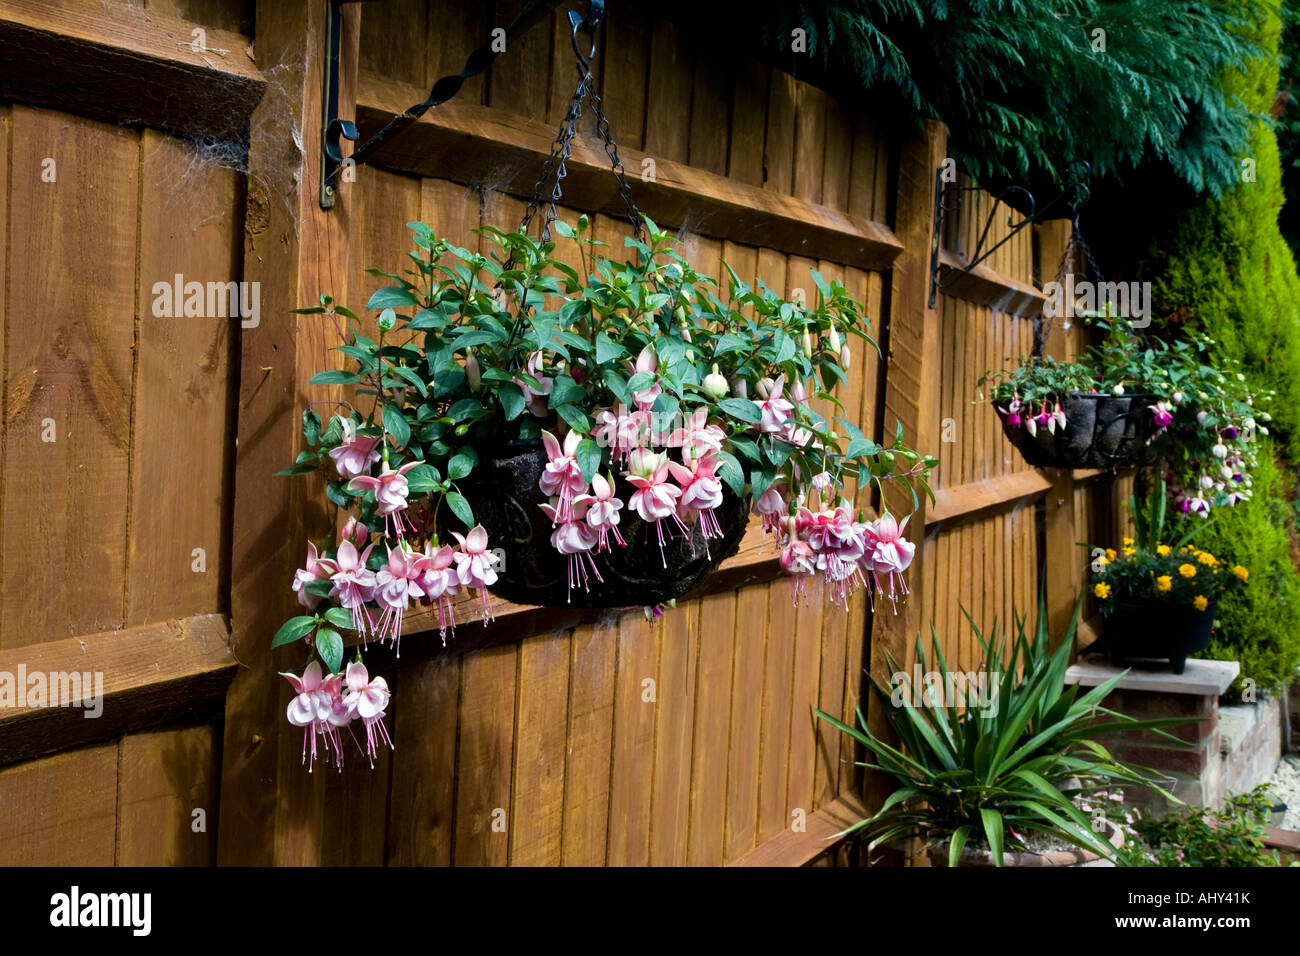 FUCHSIA GROWING IN A HANGING BASKET UP AGAINST A GARDEN FENCE Stock ...